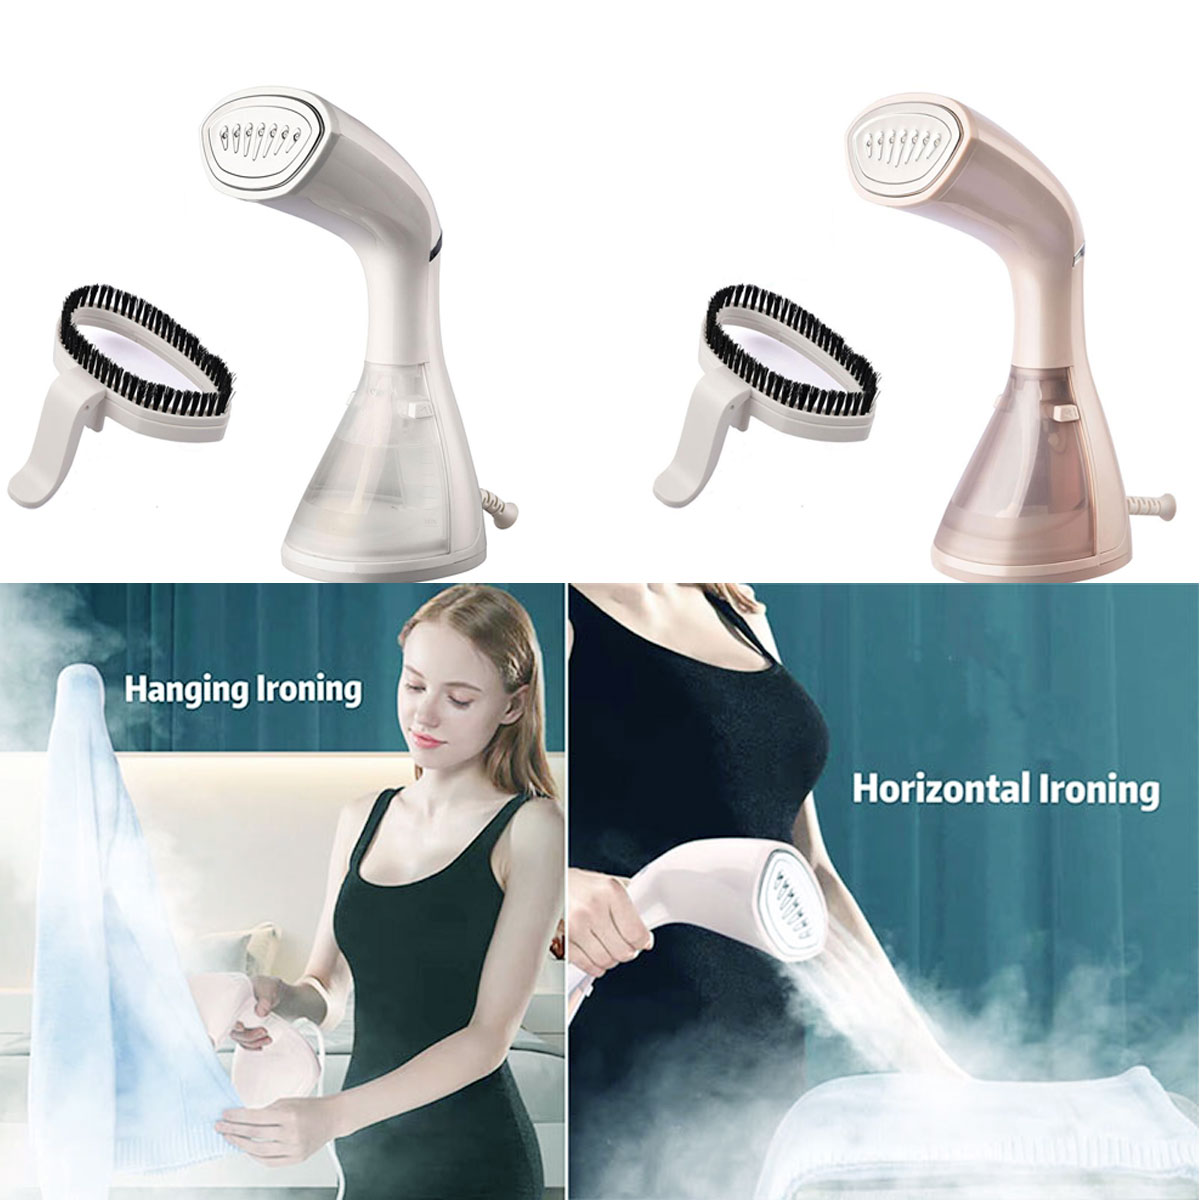 Portable Handheld Steam Iron Travel Cleaning Brush Clothes Household Appliance